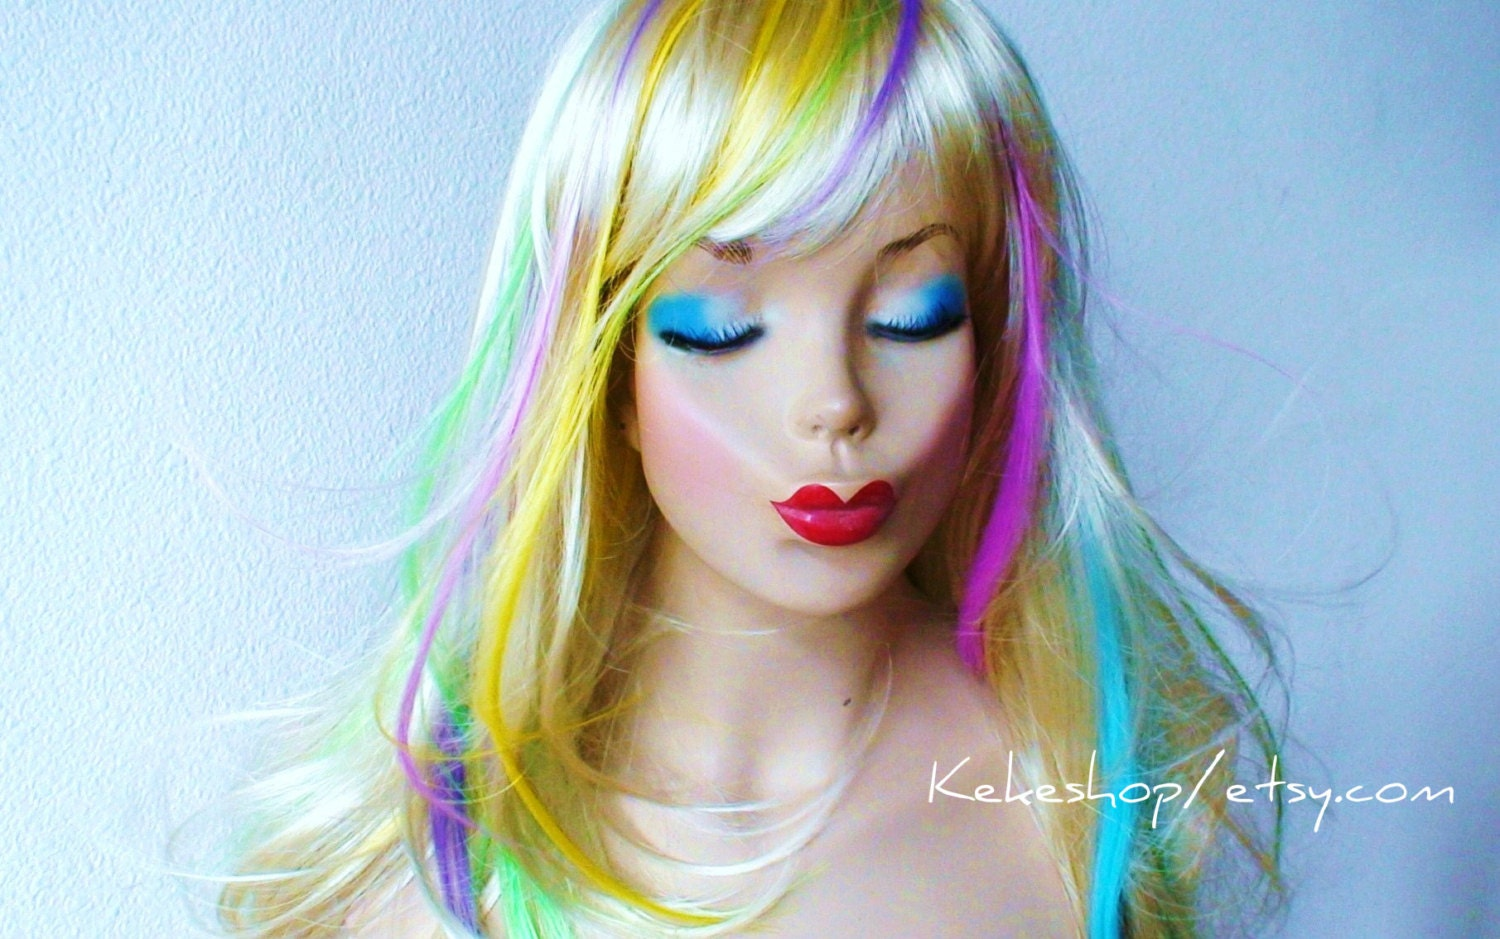 ... highlights in blonde hair displaying 19 images for blue highlights in